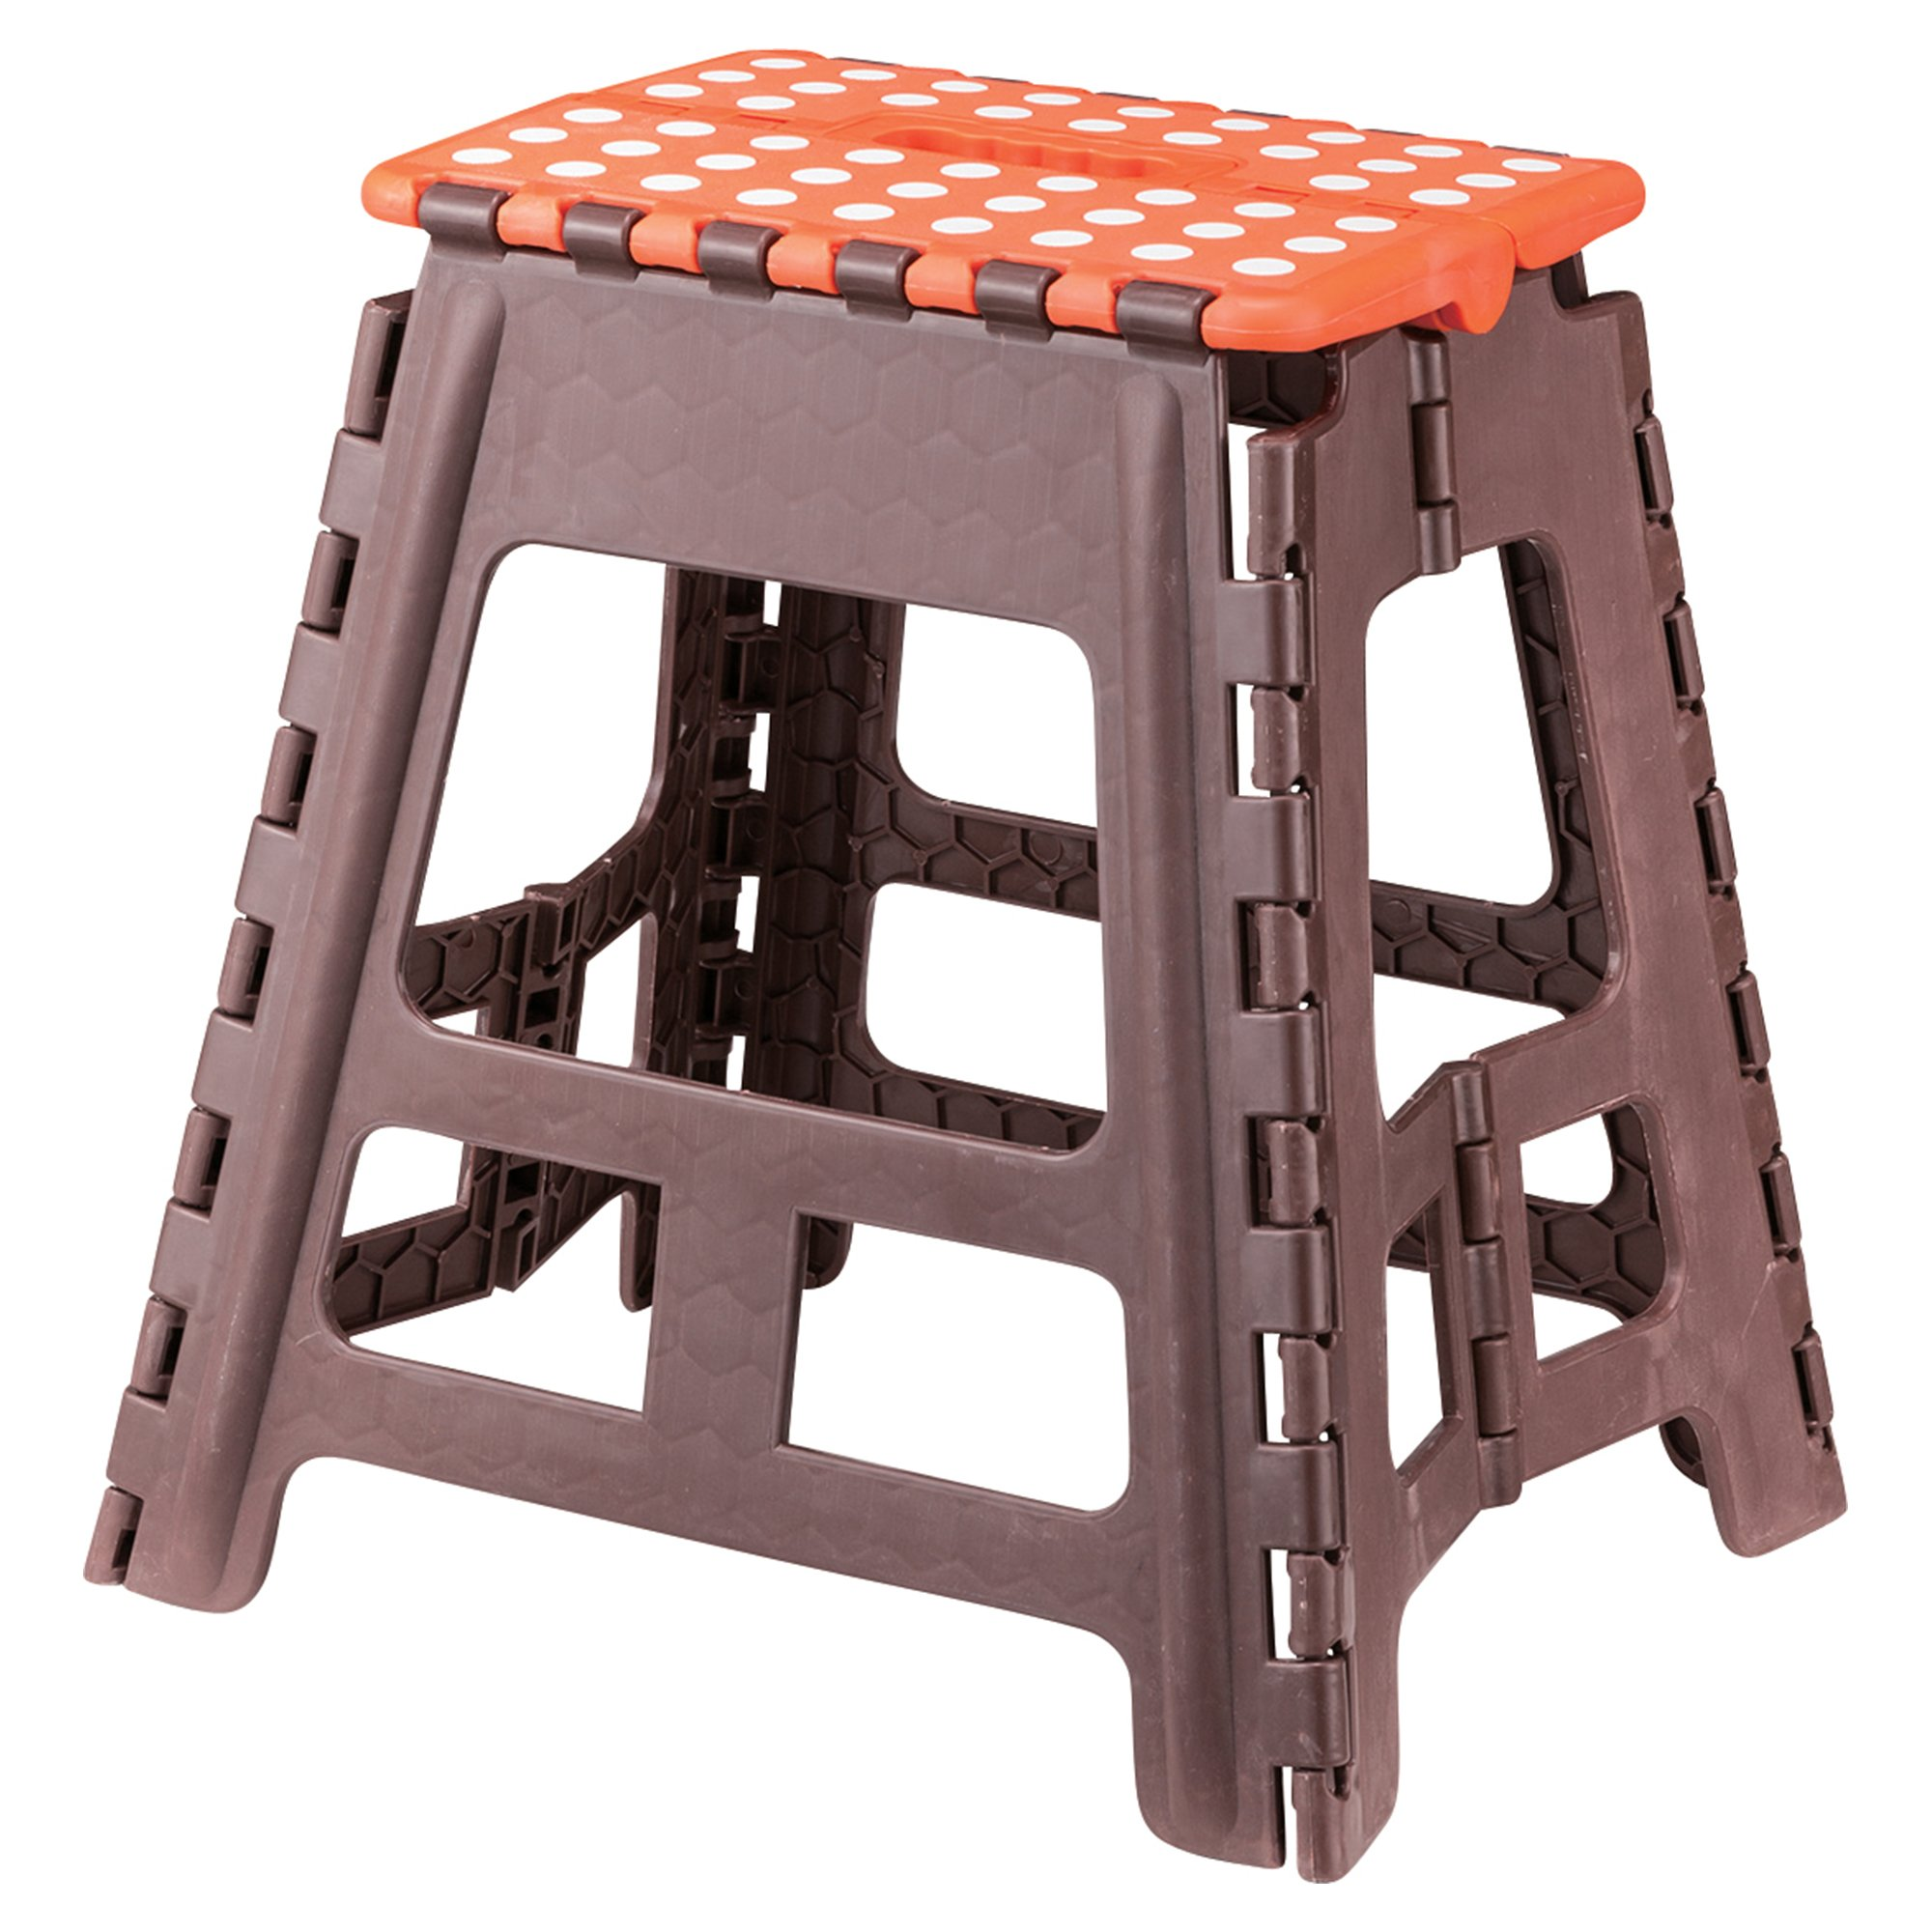 AZUMAYA Folding Step Stool Brown 15.4'' High FKF-622OR